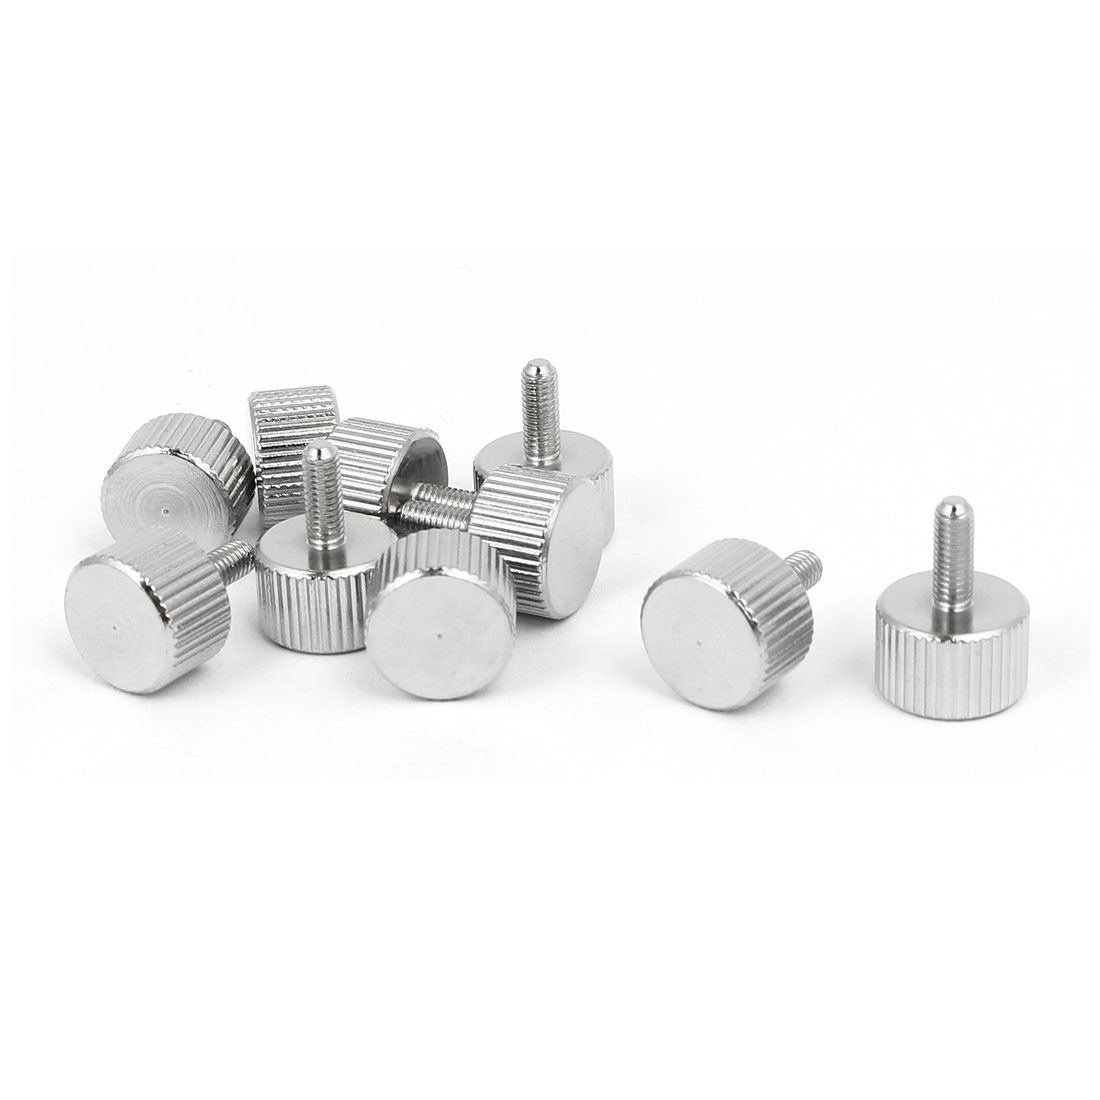 M3x8mm Nickel Plated Flat Head Knurled Thumb Screw 10pcs for Computer PC Case